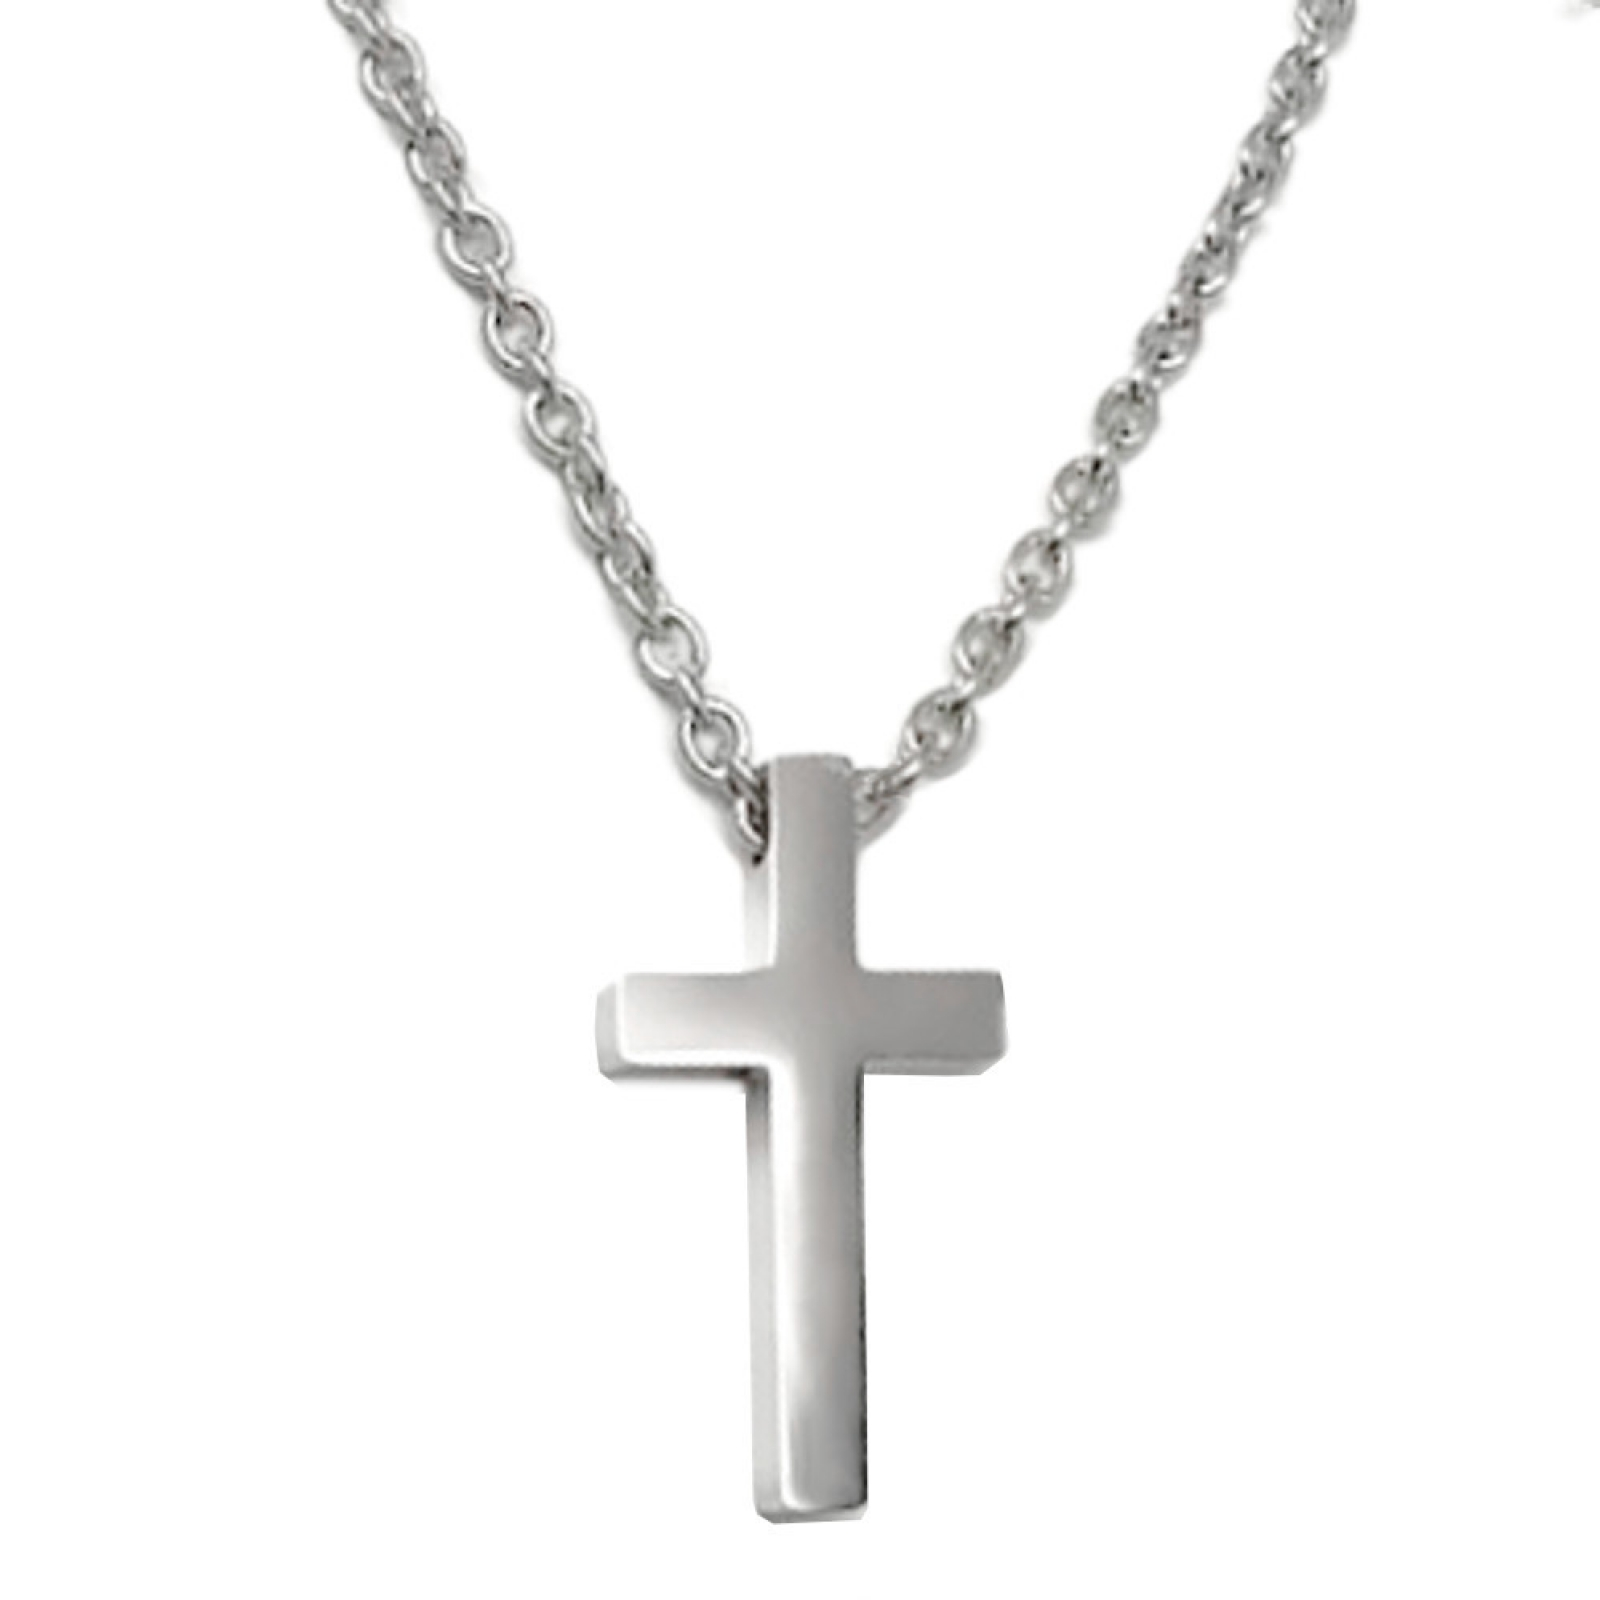 silver pendant james zi latin p sterling plain avery cross dillards necklace